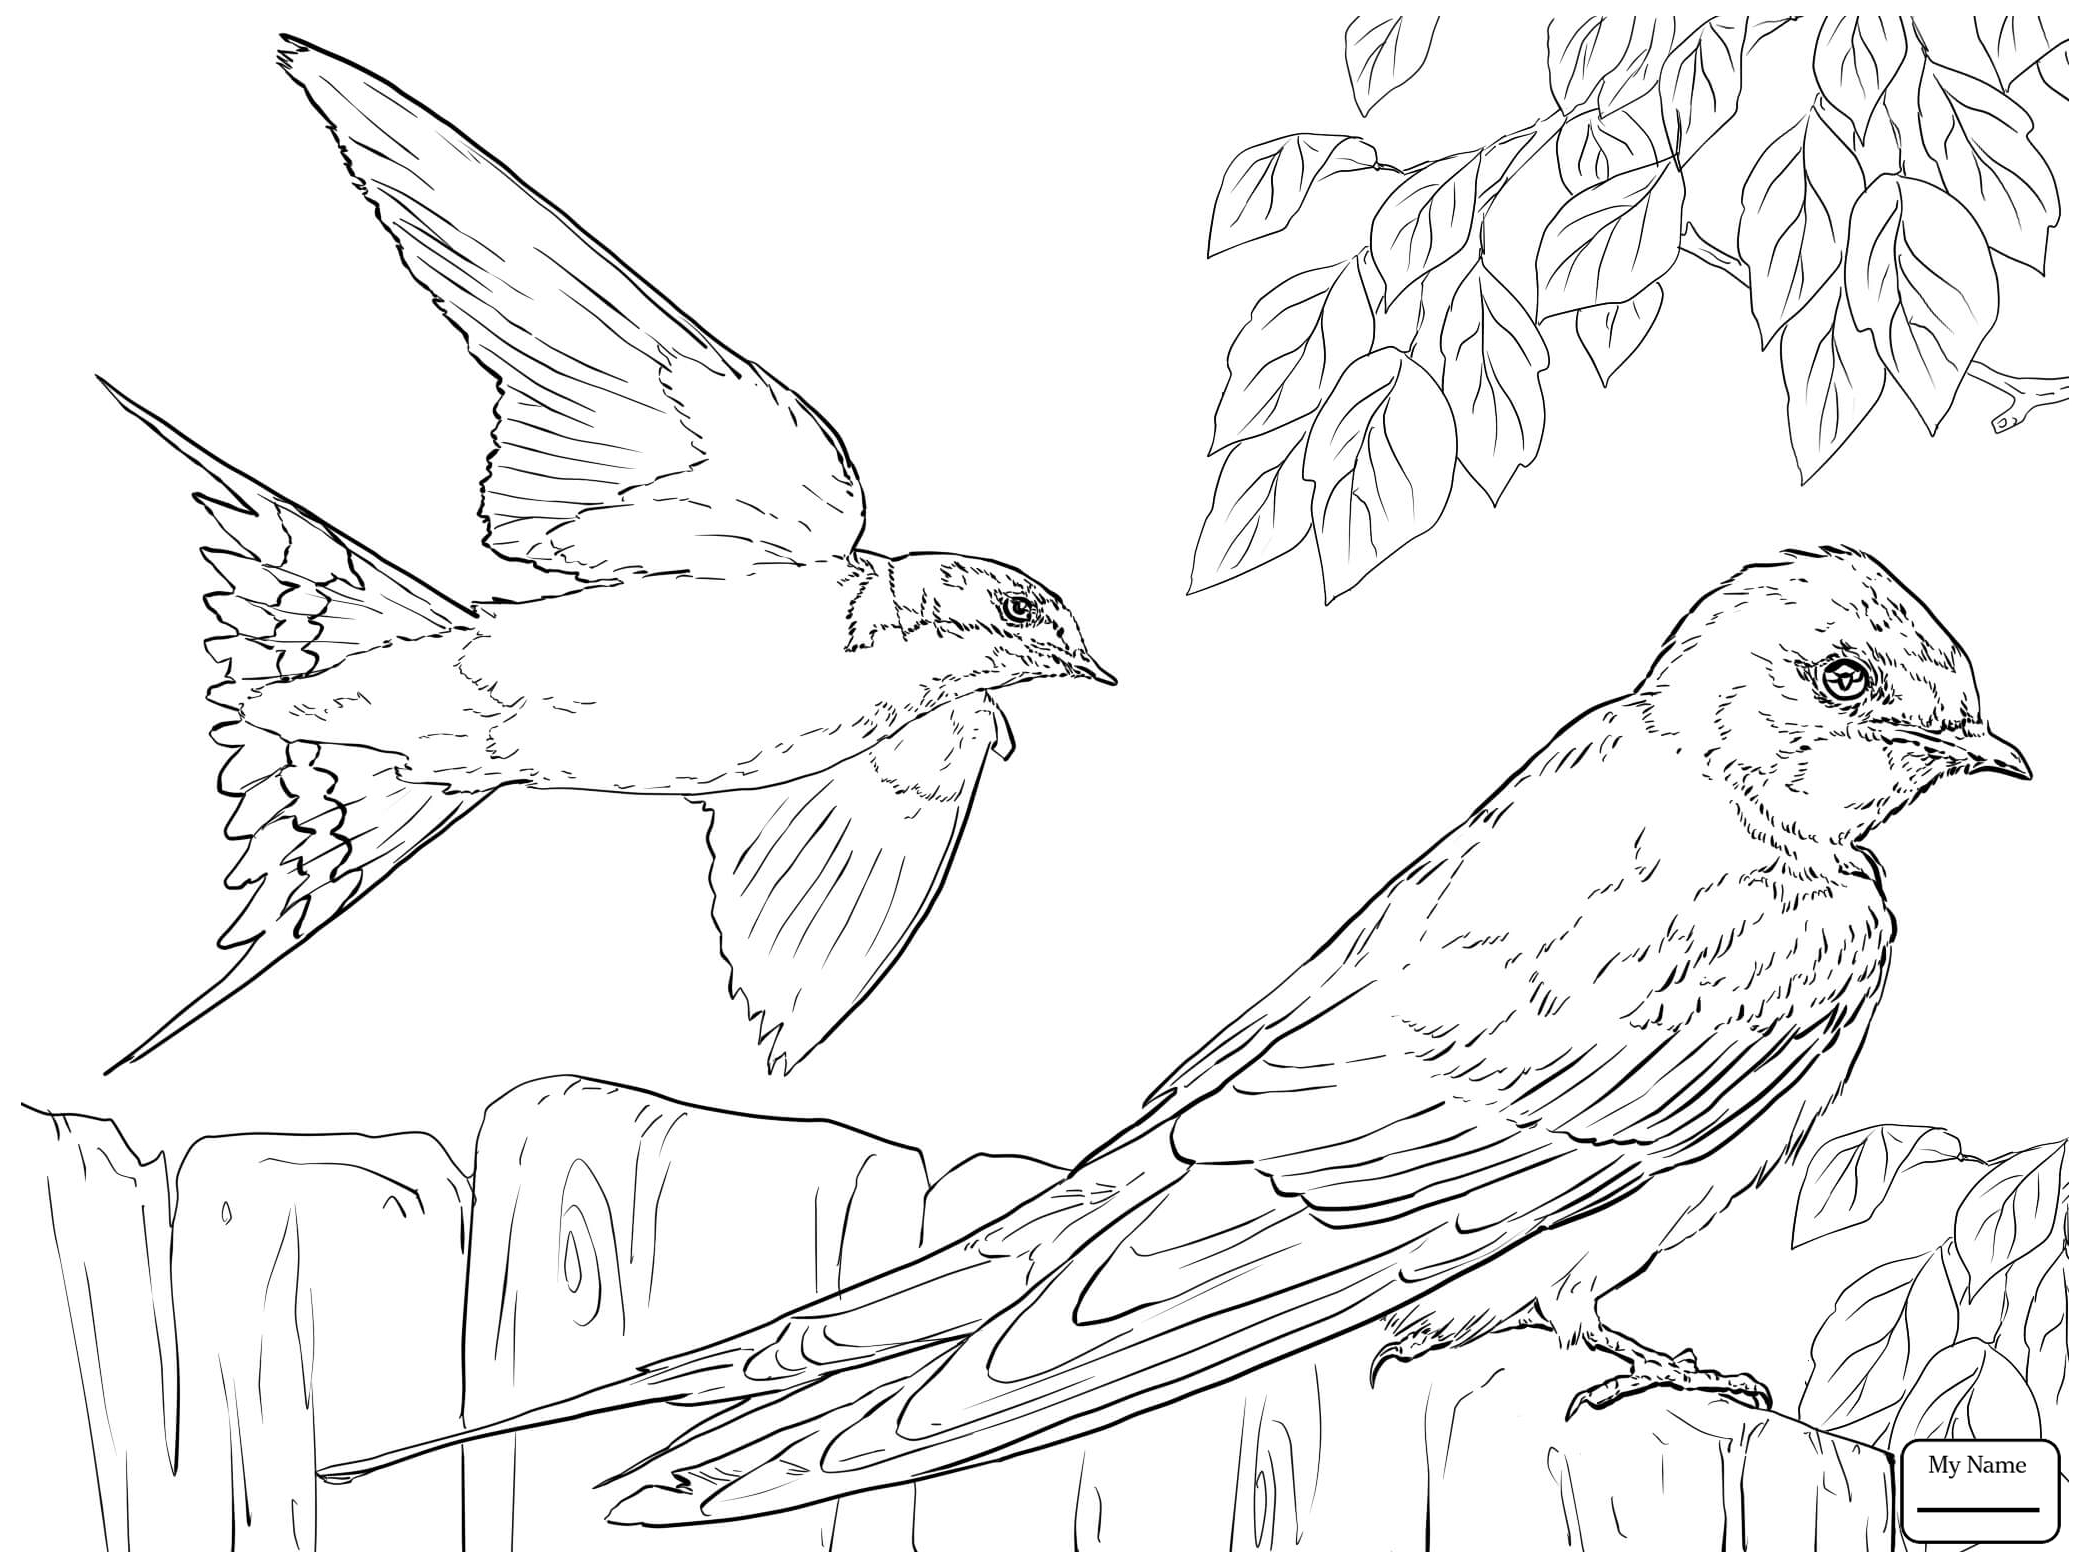 Bird In Flight Drawing at GetDrawings.com | Free for personal use ...